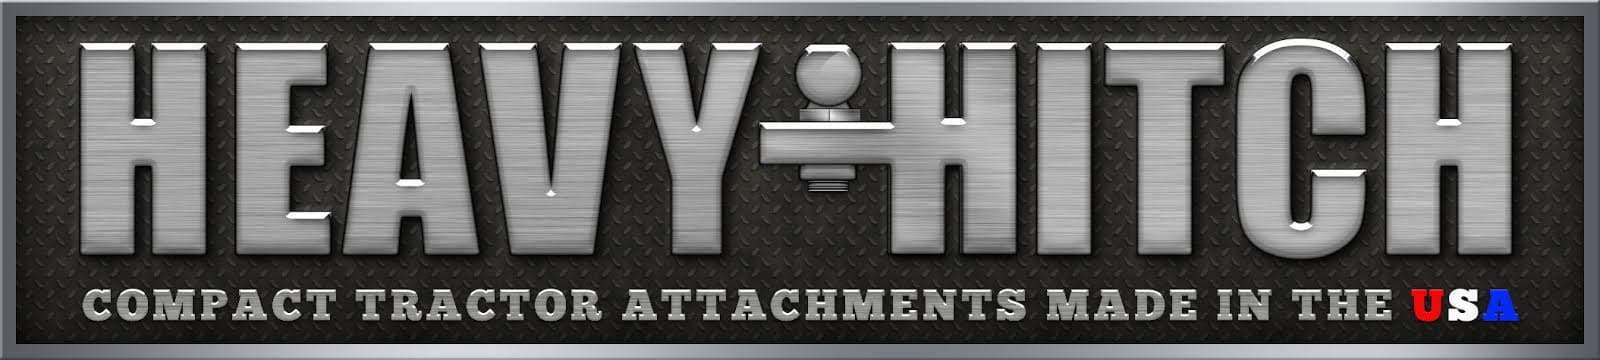 tractor-attachments-heavy-hitch-recievers-3-point-hitches-large-logo